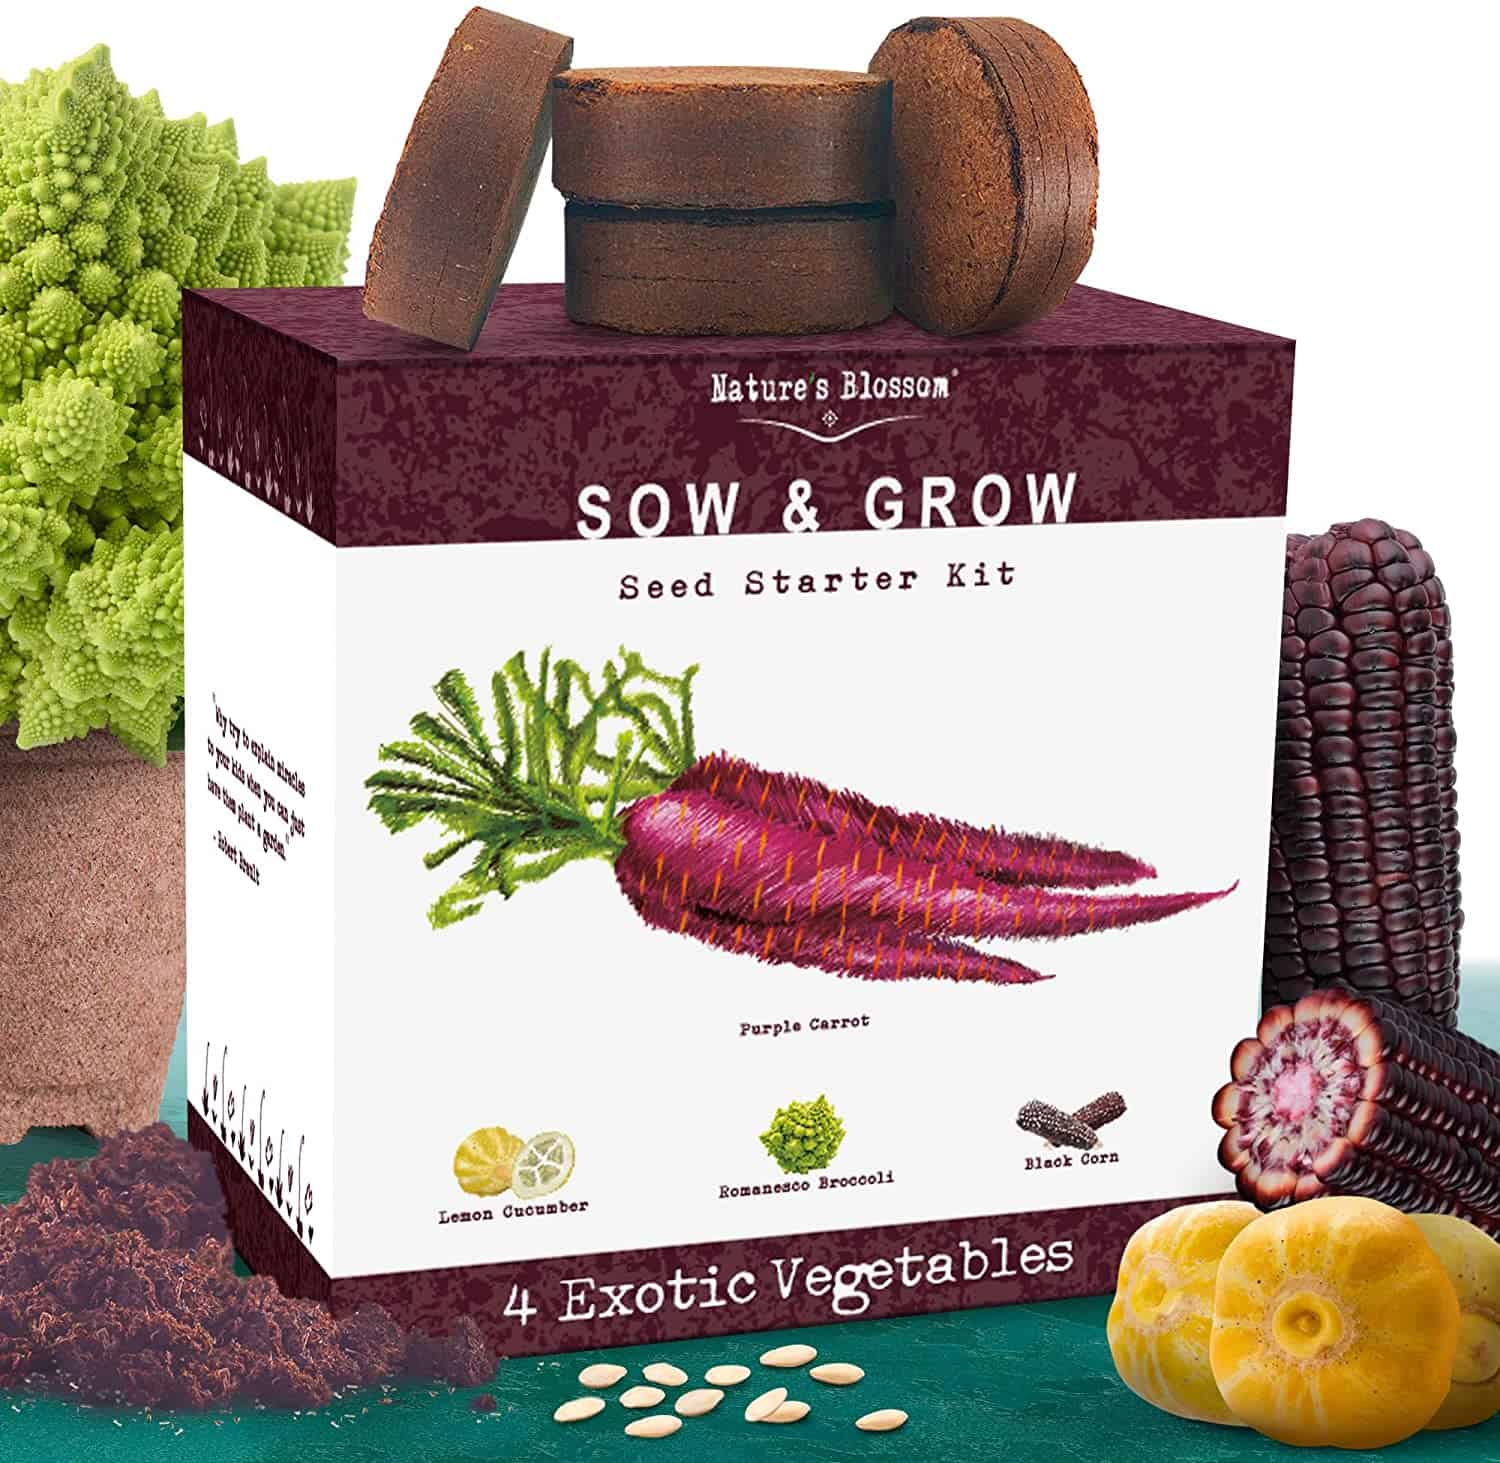 Nature's Blossom Exotic Vegetables Growing Kit. 4 Unique Plants To Grow From Seed